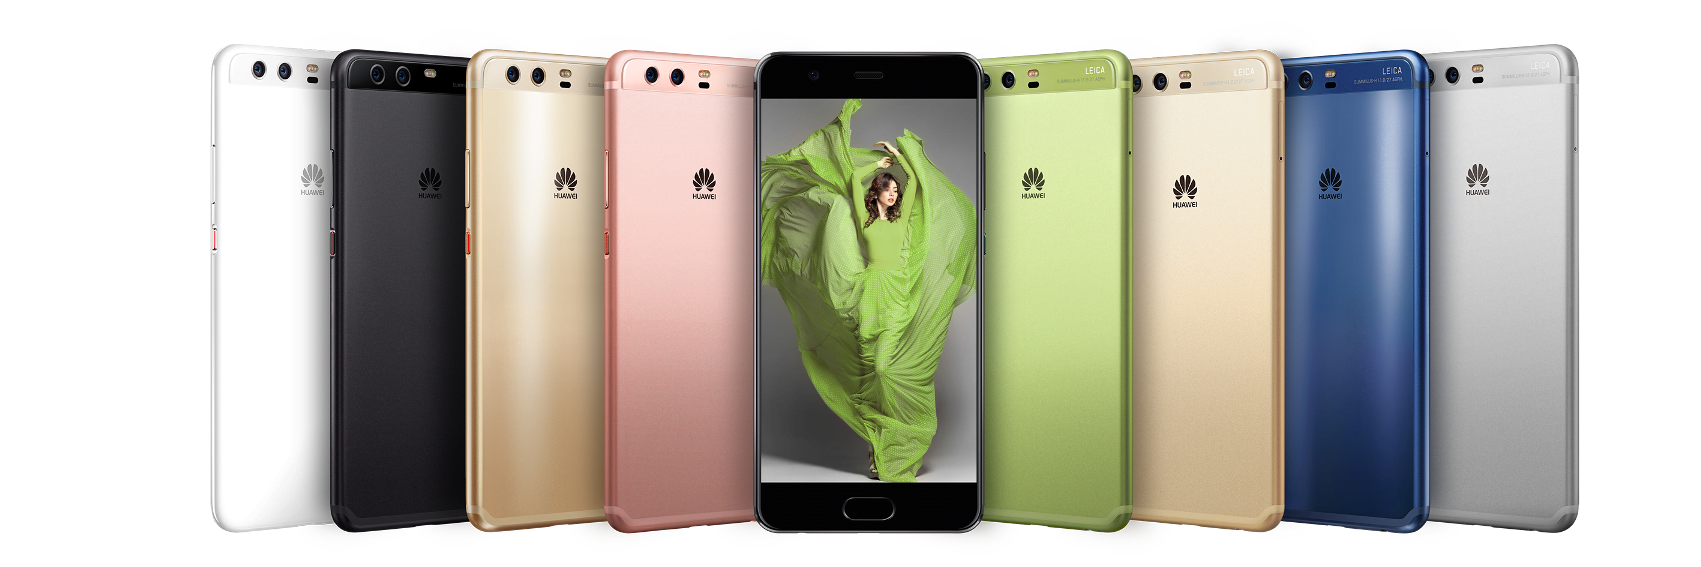 Huawei P Series, one of the most popular ranges of smartphones has achieved tremendous growth for half a decade now. It has not only managed to generate